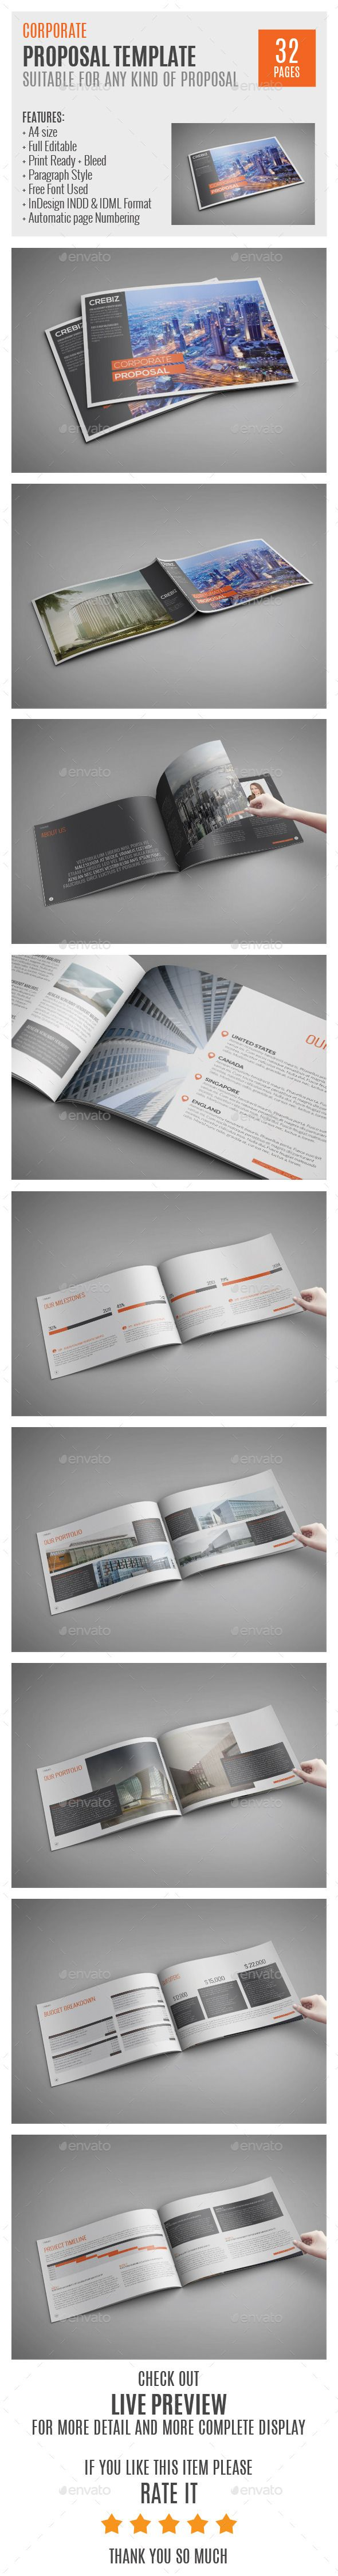 Corporate Proposal A4 Indesign Template 0034